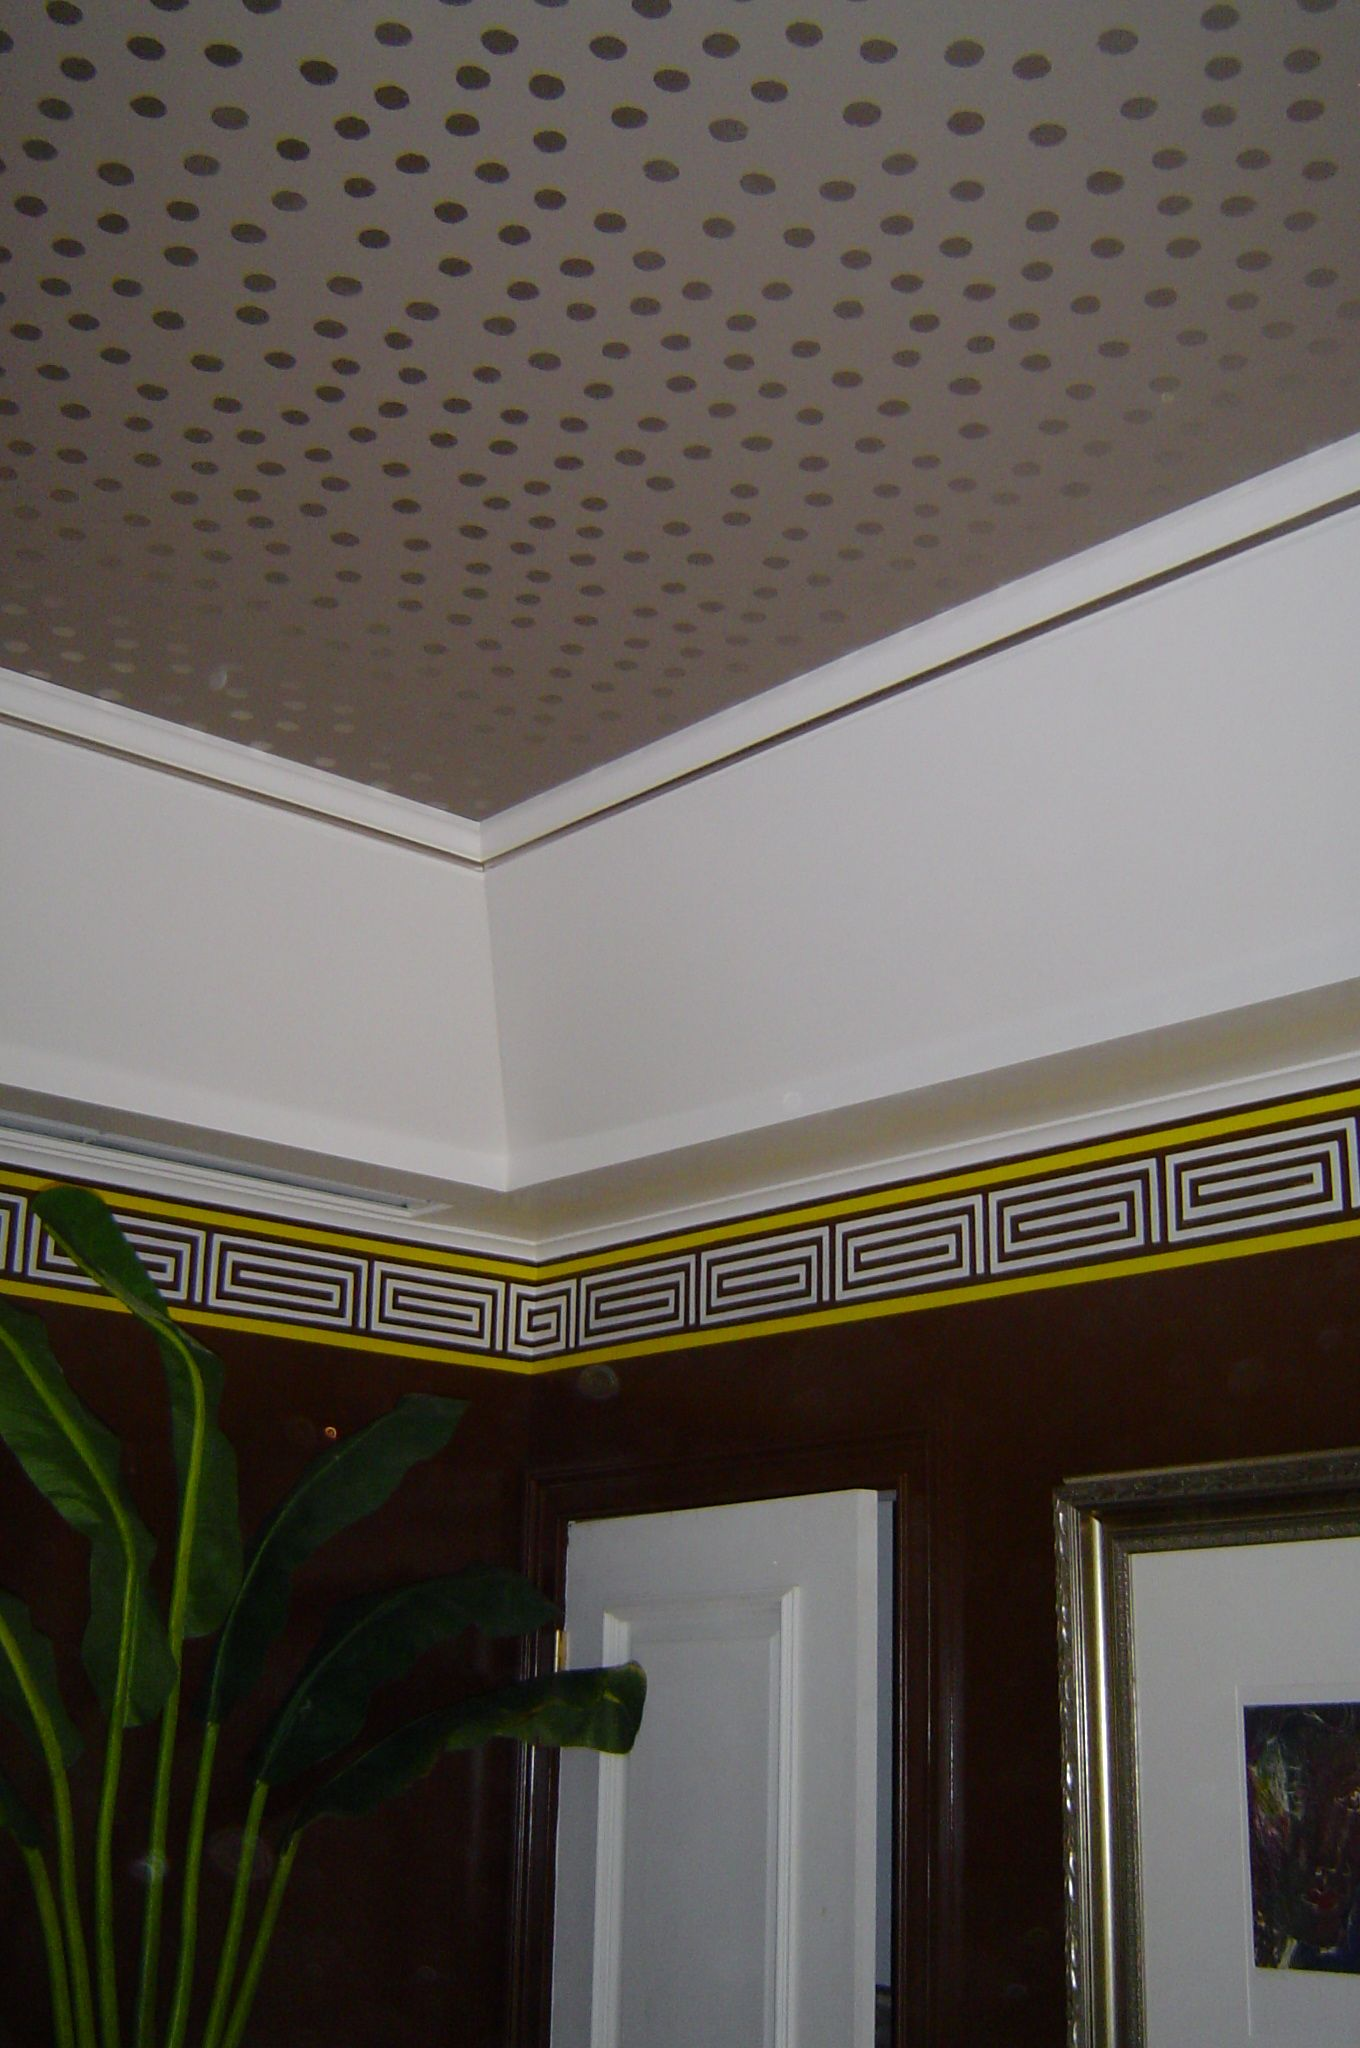 Show-House, Ceiling and Wall-Border by Jeff Huckaby (The ...